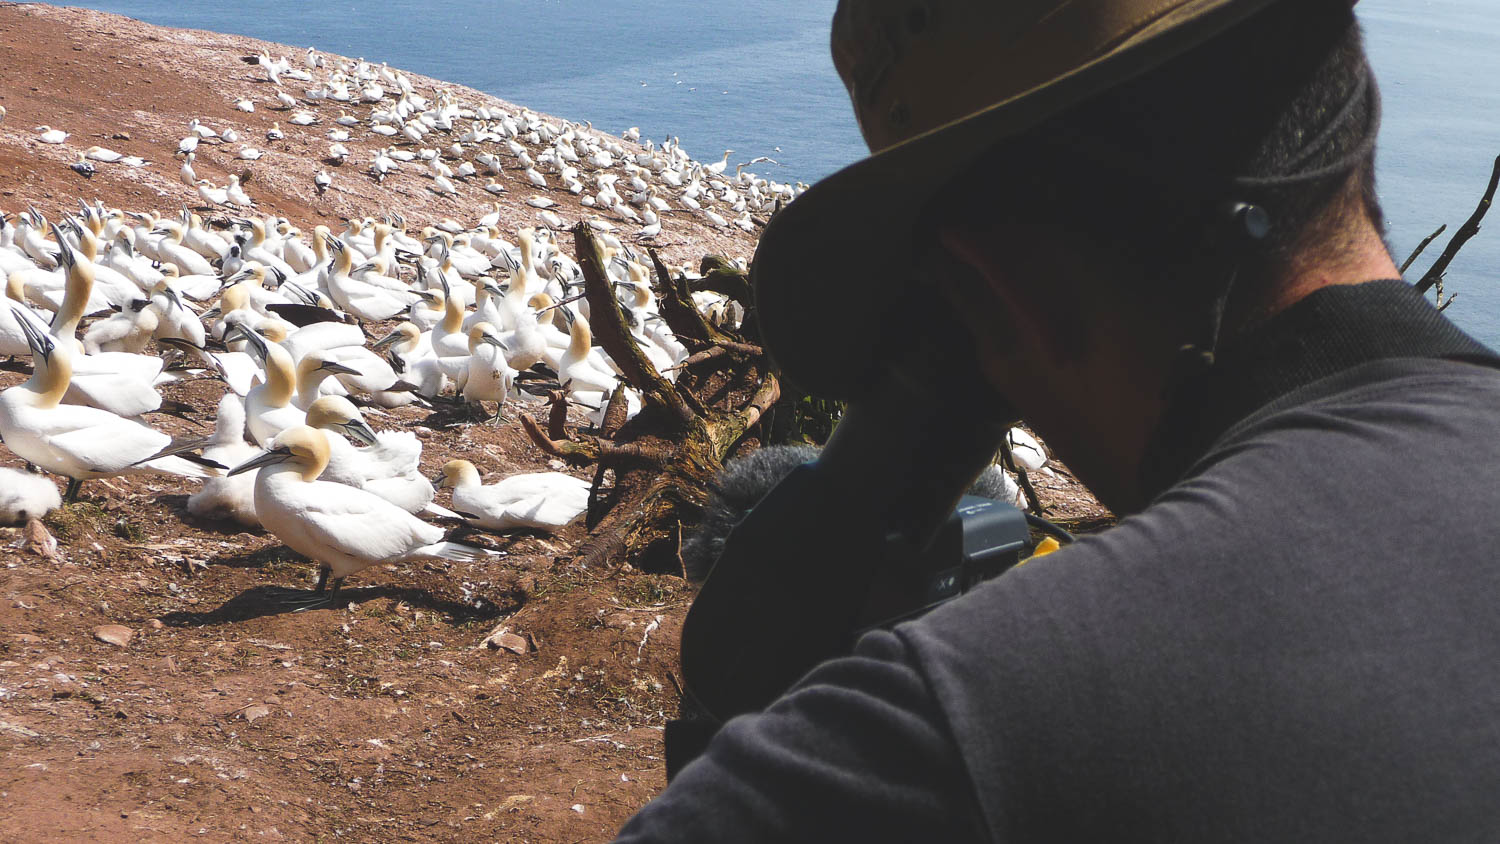 During the production of the TV Show the Great Trails Season 1, the director of photography and director Richard Duquette filming bird on the Bonaventure Island in the Gaspesian Peninsula, Quebec, Canada.